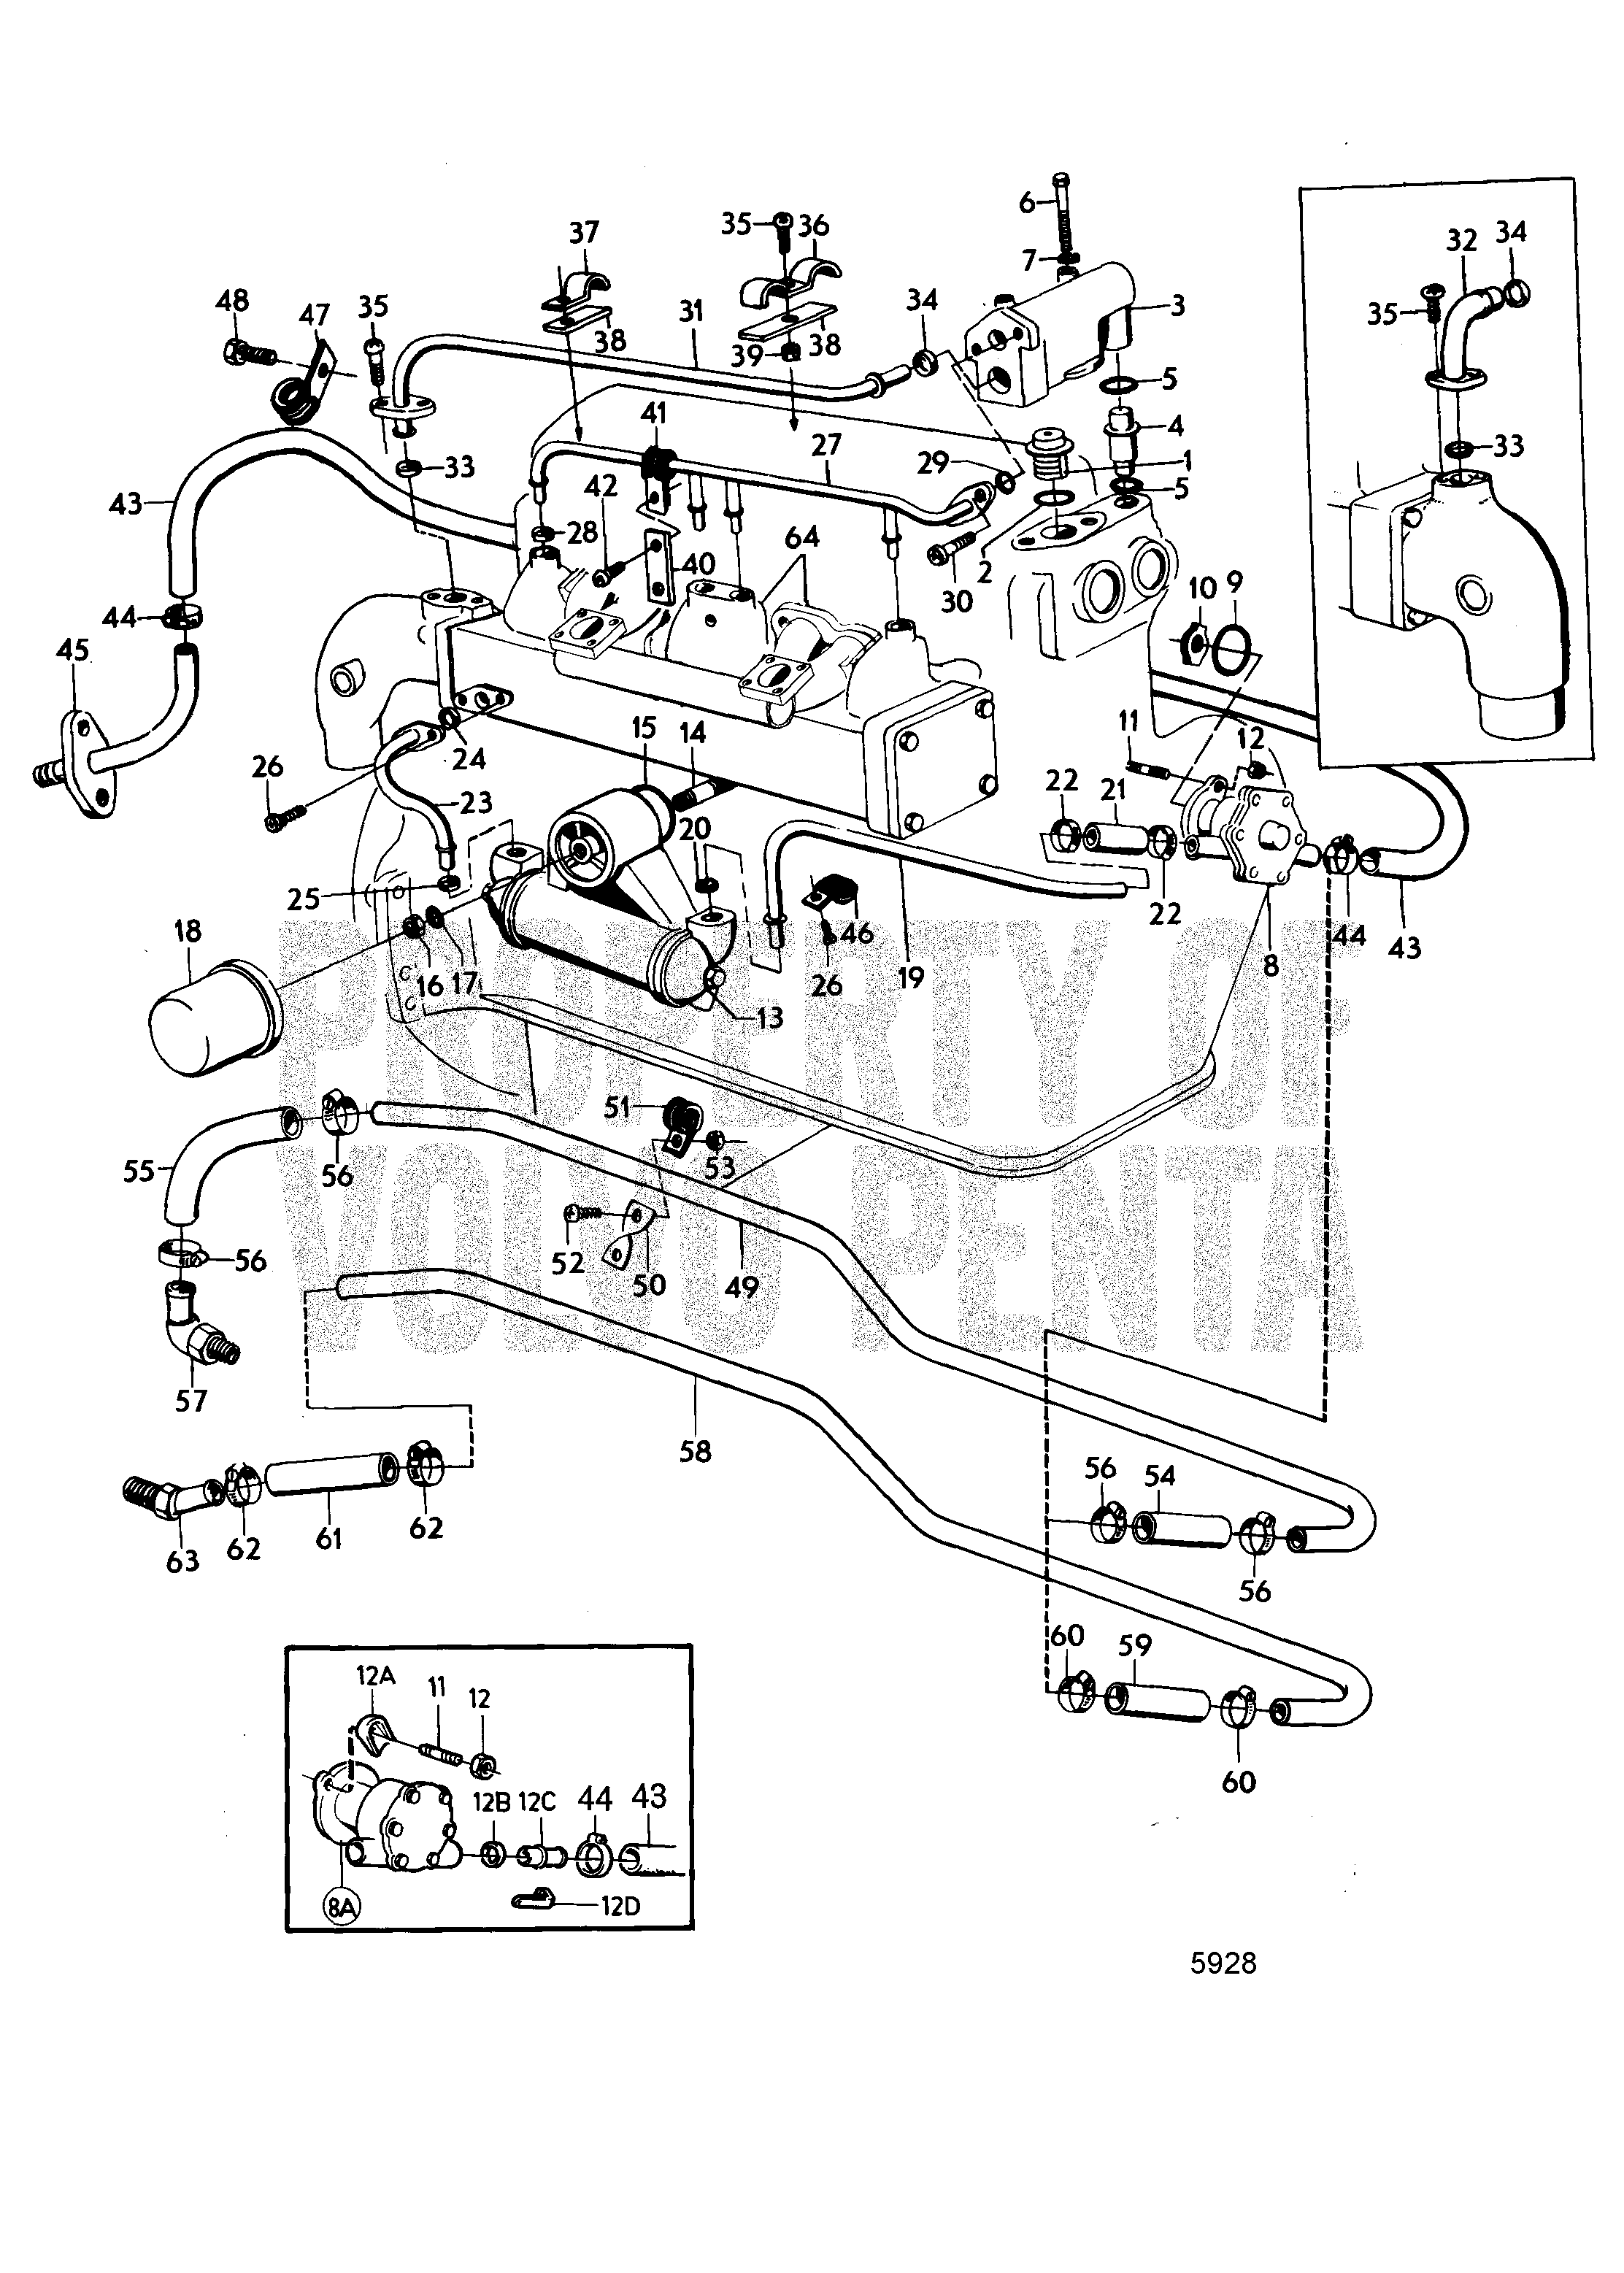 Volvo Alternator Wiring Diagram Images Renault 5928 On